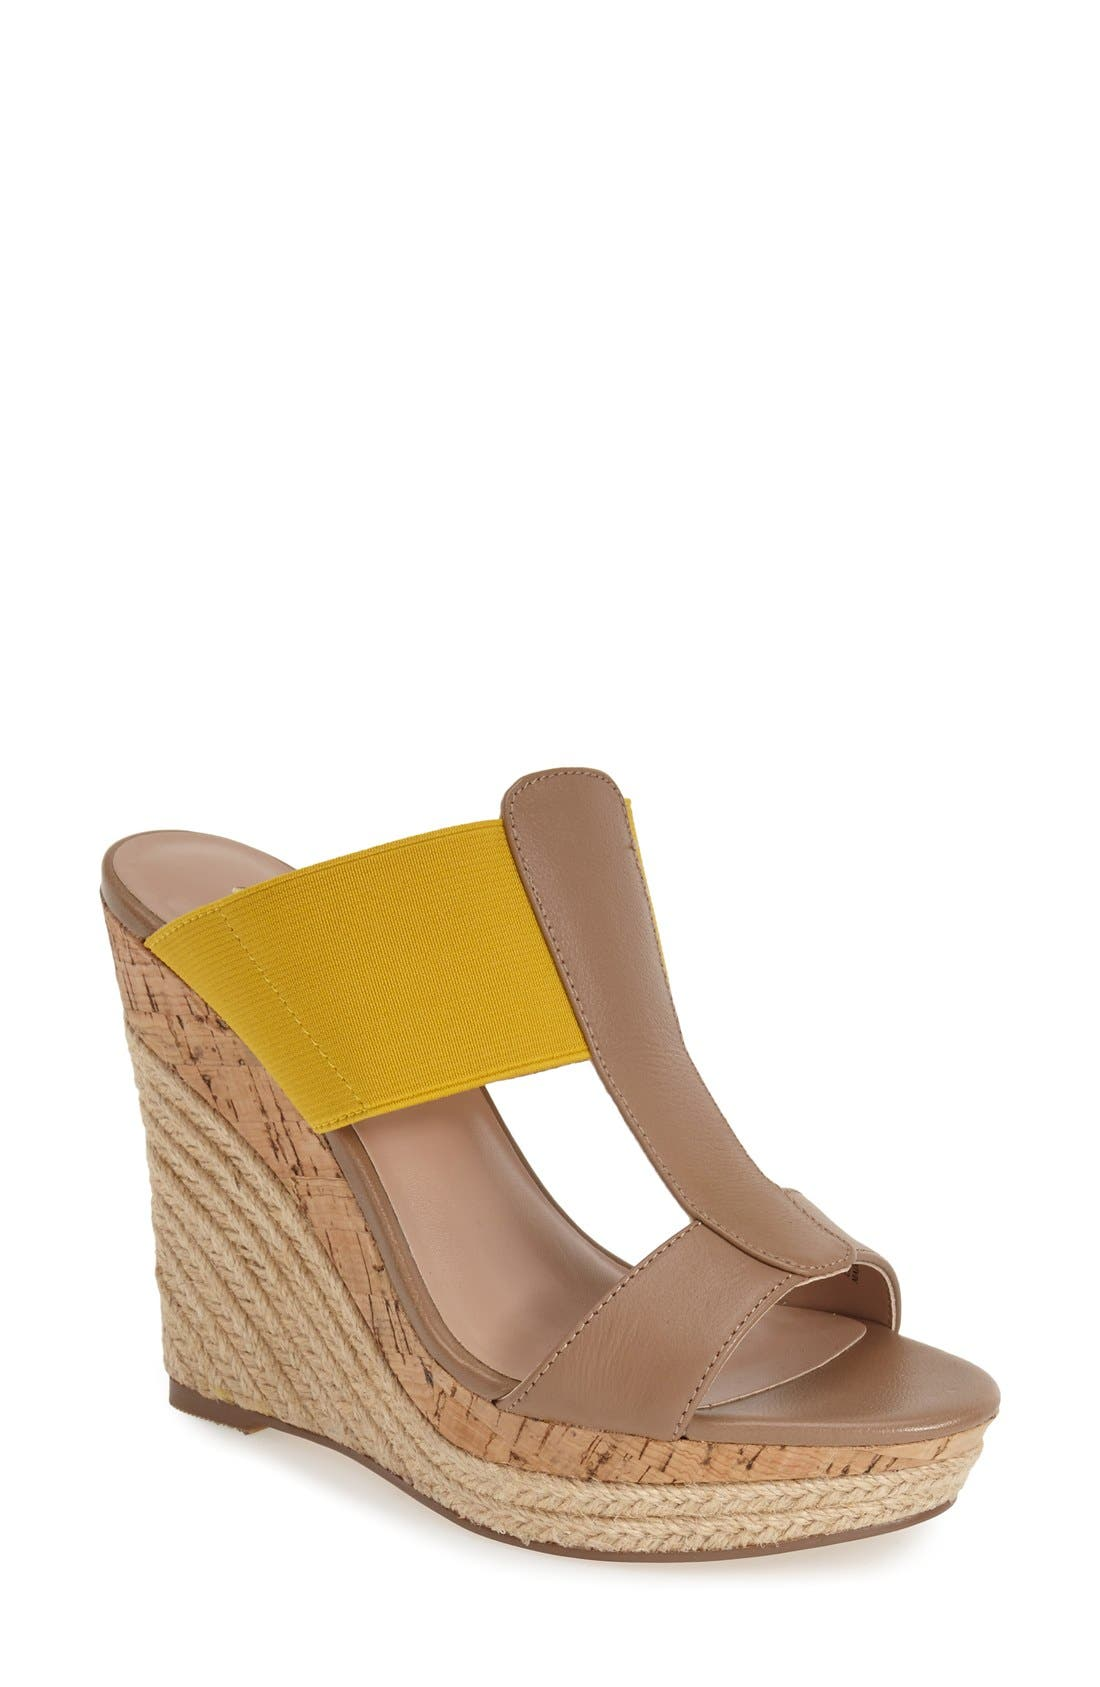 Main Image - Charles by Charles David 'Alto' Espadrille Wedge Sandal (Women)